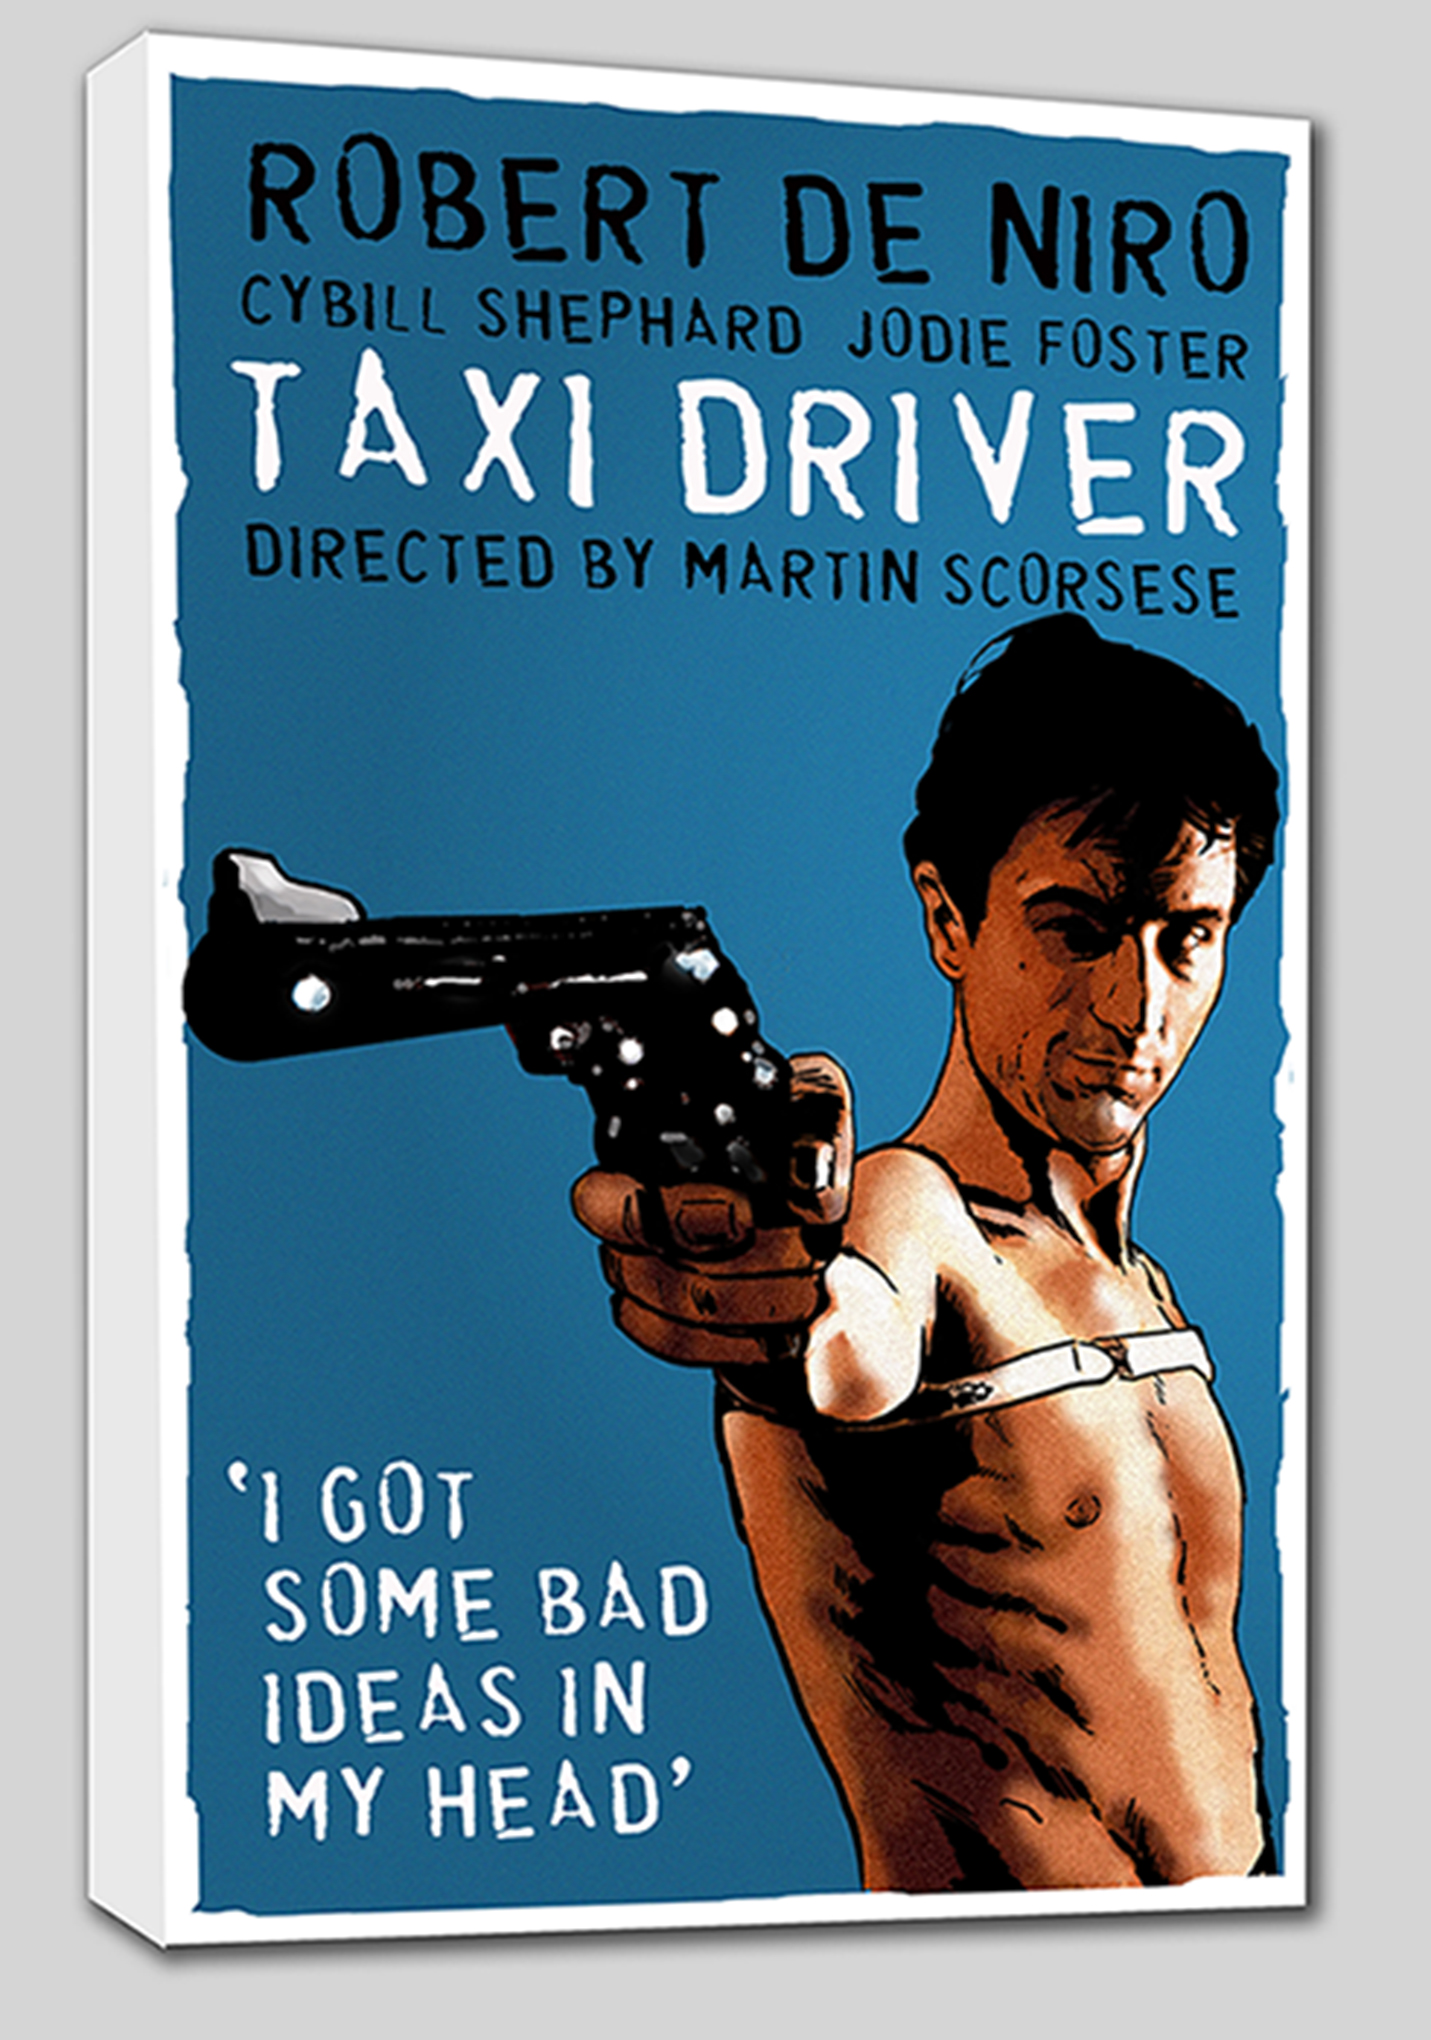 Taxi Driver Mounted Canvas Wrap - the colour  extends around the edges of the canvas